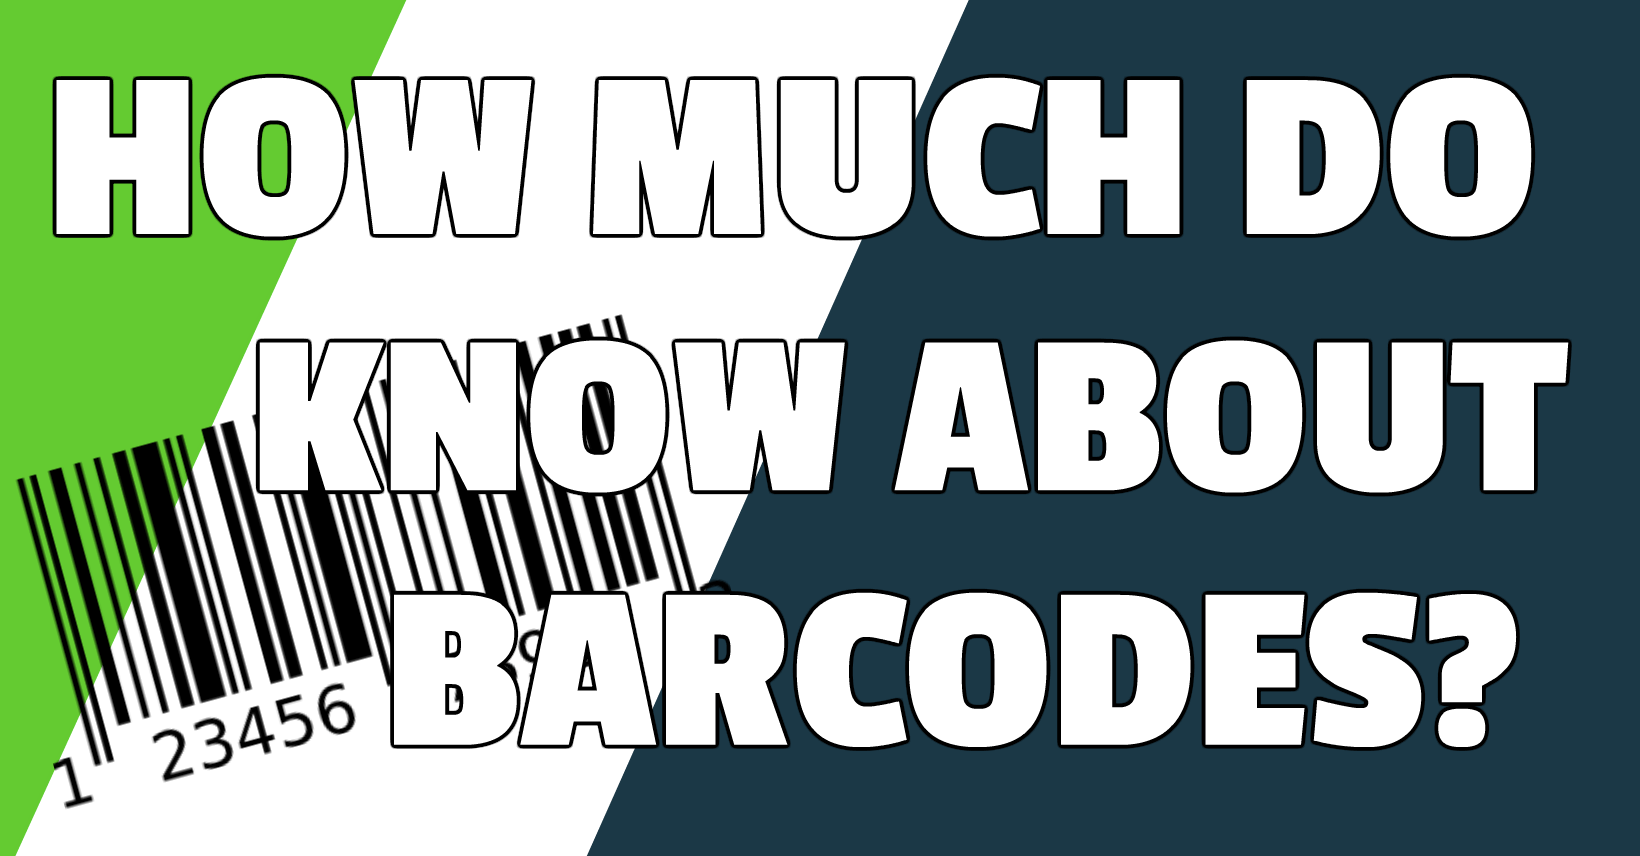 7 things you didn't know about book barcodes